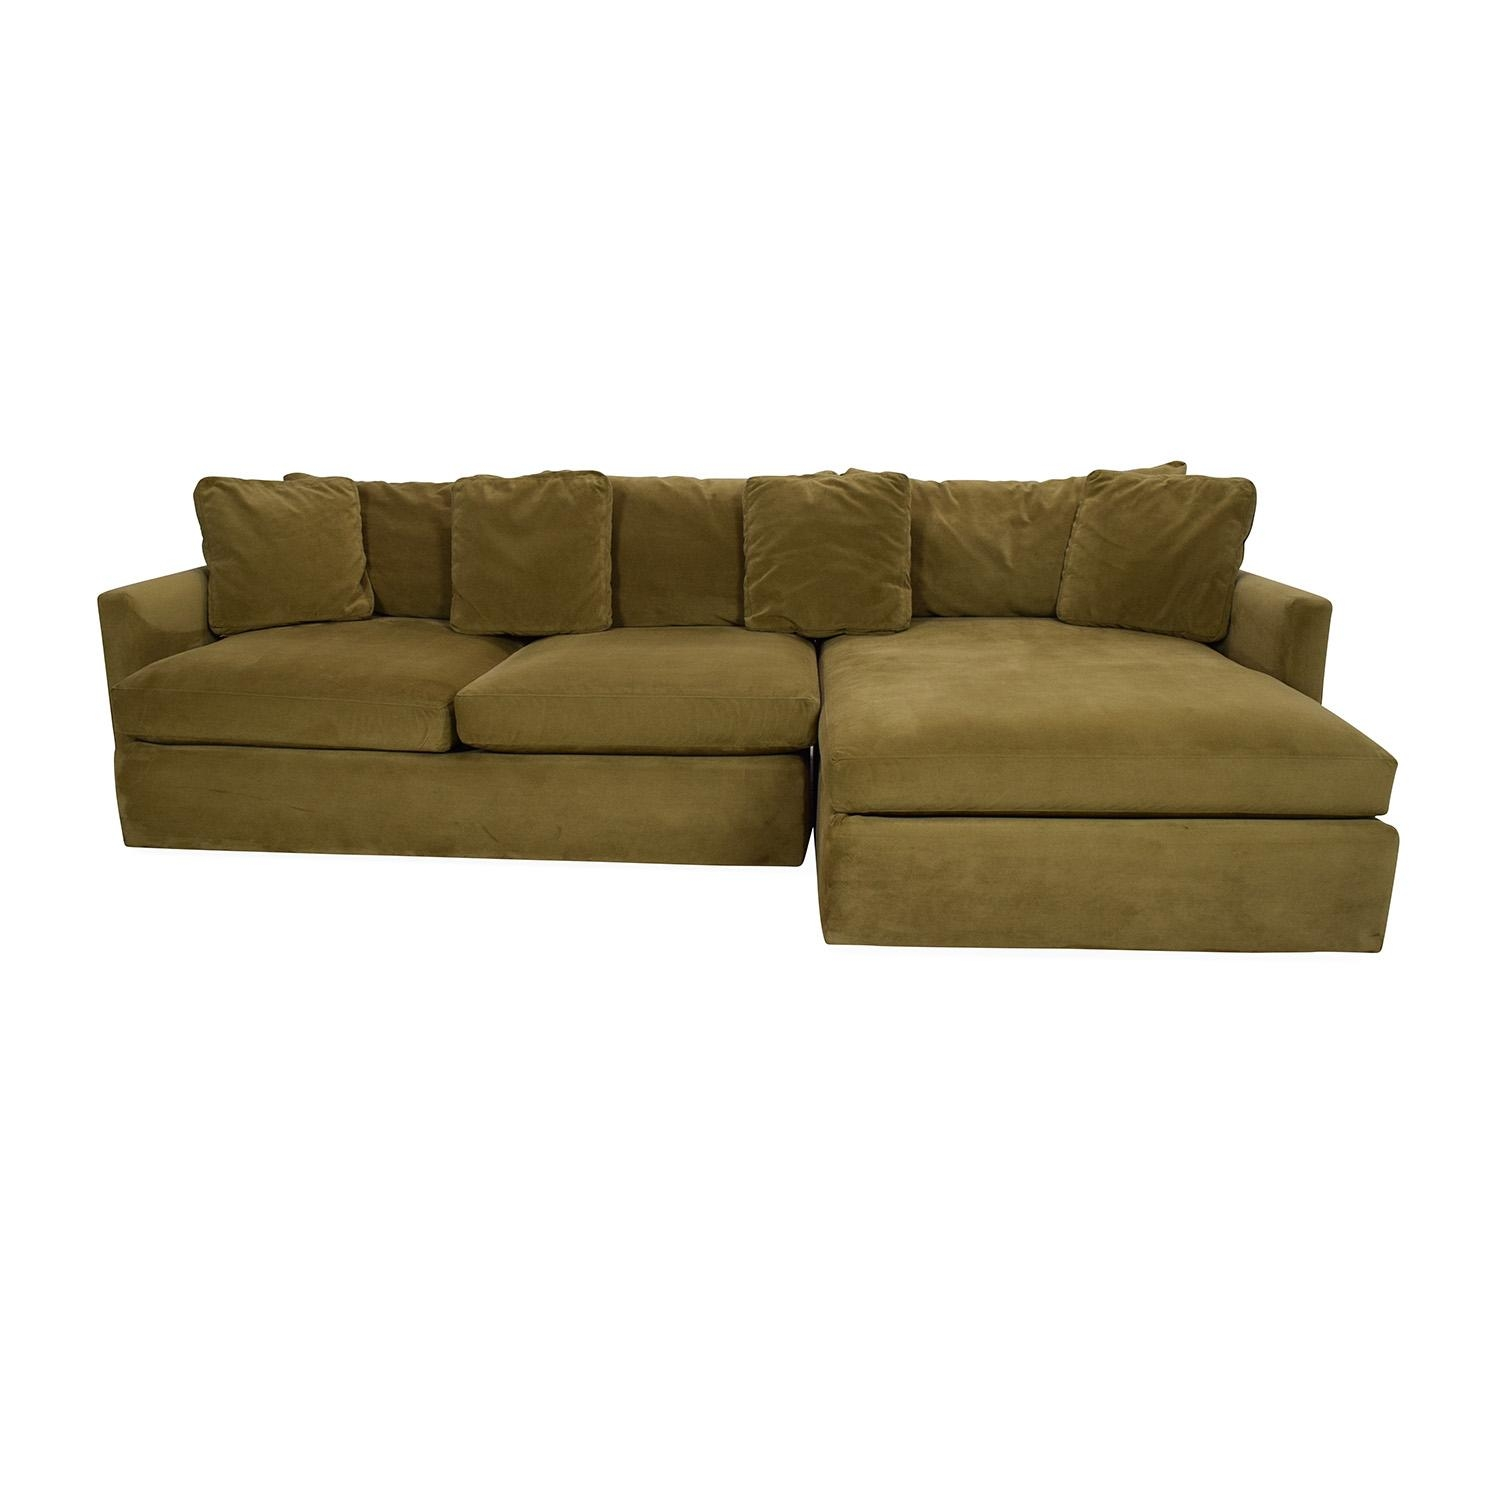 65% Off - Crate And Barrel Crate And Barrel Lounge Ii Sectional with Used Sectionals